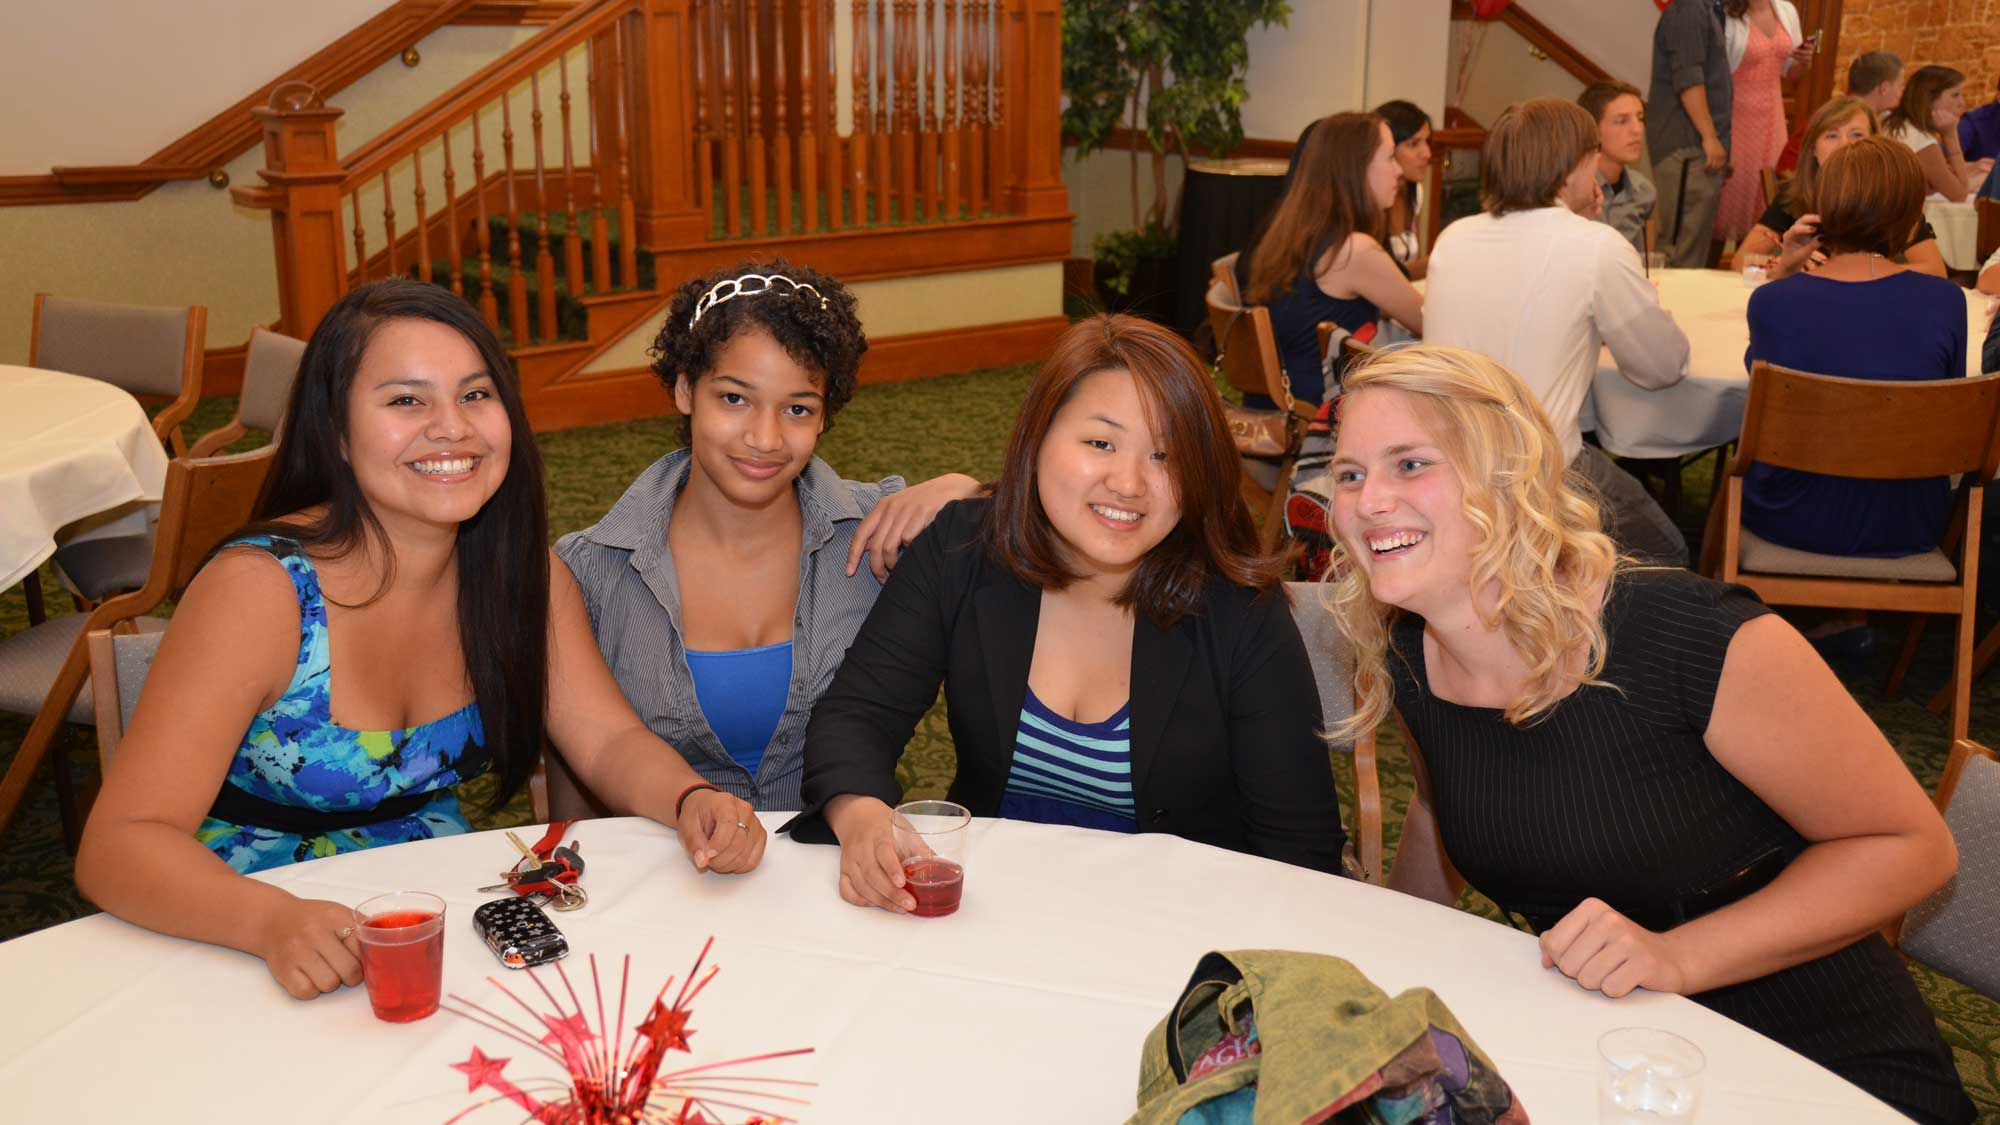 Students at a banquet